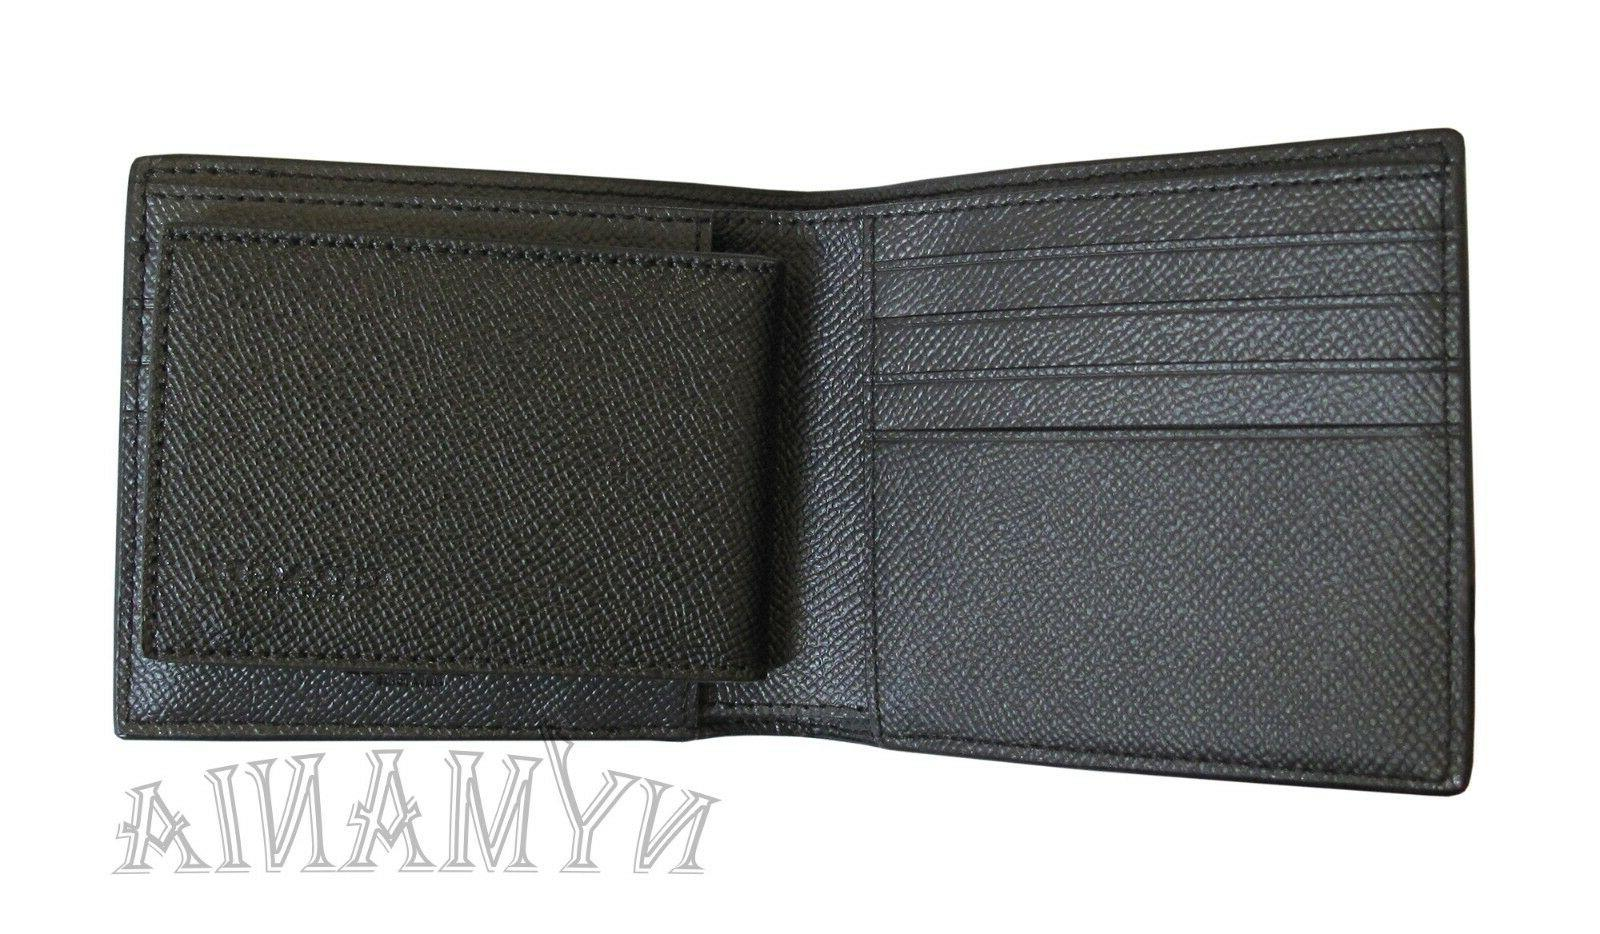 New F59112 Mens 3-IN-1 Leather GIFT BOX